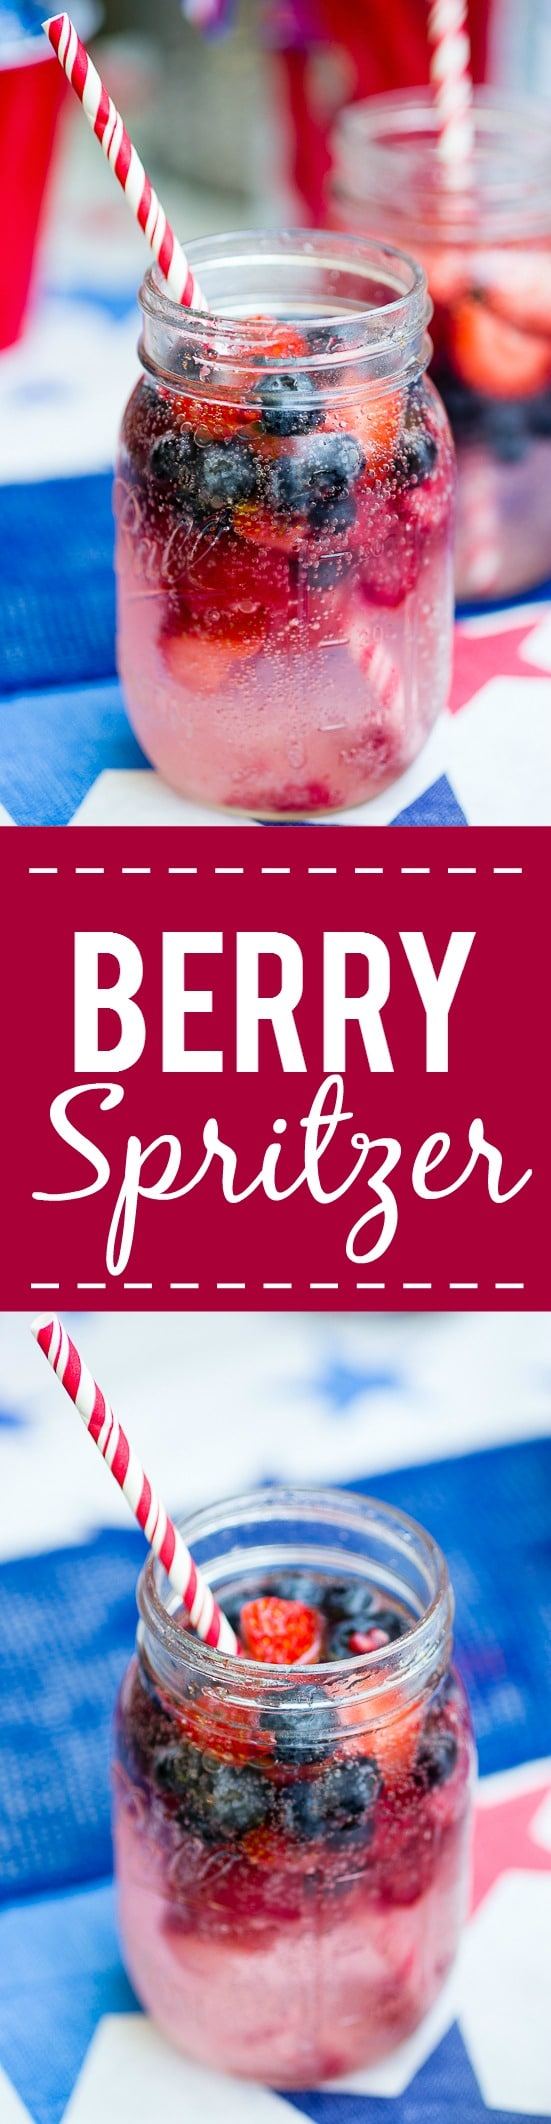 Patriotic Berry Spritzer -Fresh and full of sweet berries, this Berry Spritzer is a pretty and refreshing beverage that's patriotic too! Perfect for any occasion and using up ripe Summer berries! Yum! Omg. So good for fresh sweet summer berries. Blueberries, strawberries, raspberries....